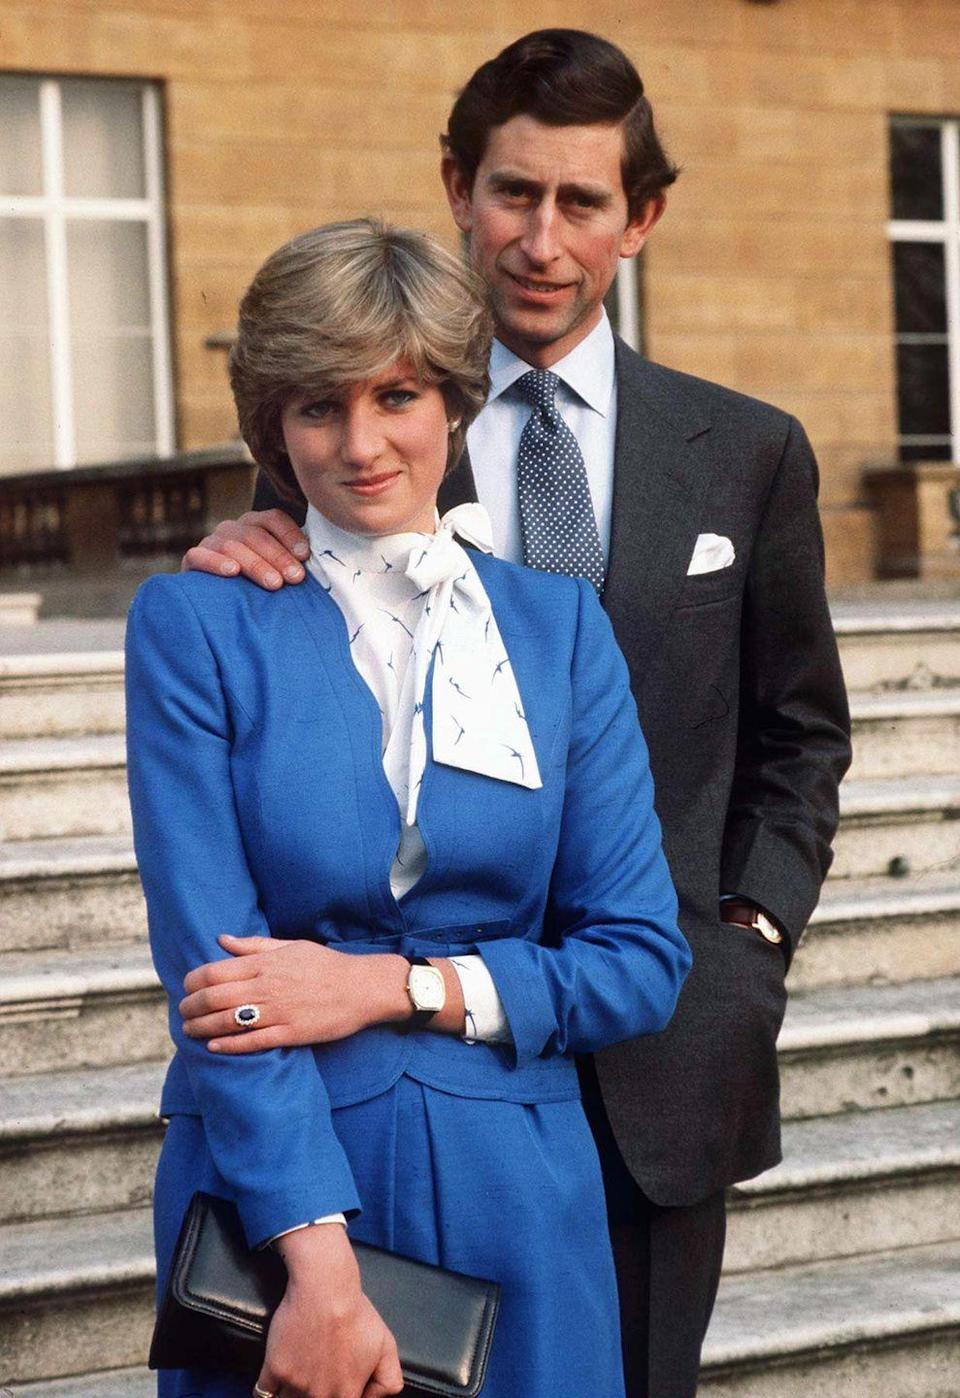 """<p>Lady Diana Spencer and Prince Charles announced their engagement in 1981 on the steps of Buckingham Palace. The future Princess selected the ring herself from a Garrard catalogue. Some say that the <a href=""""https://www.goodhousekeeping.com/life/a22727712/princess-diana-engagement-ring/"""" rel=""""nofollow noopener"""" target=""""_blank"""" data-ylk=""""slk:Palace was upset with the ring selection"""" class=""""link rapid-noclick-resp"""">Palace was upset with the ring selection</a>, because it wasn't a rare jewel and could be purchased by anyone at the time. </p>"""